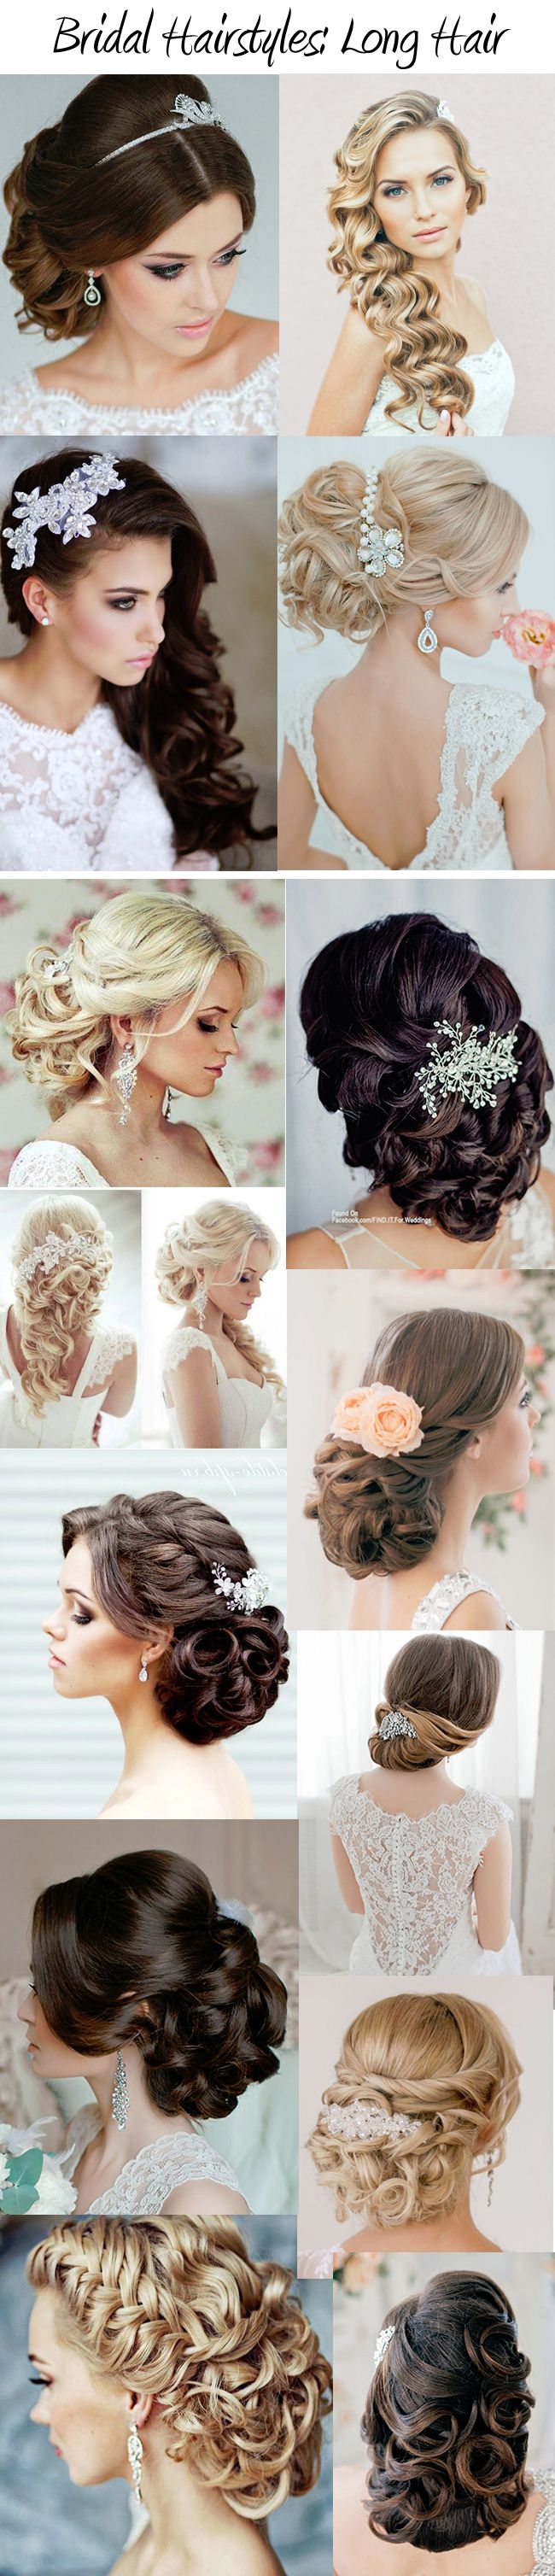 Gorgeous Bridal Hairstyles: Our Brides' Favorites www.customdreamgowns.com…